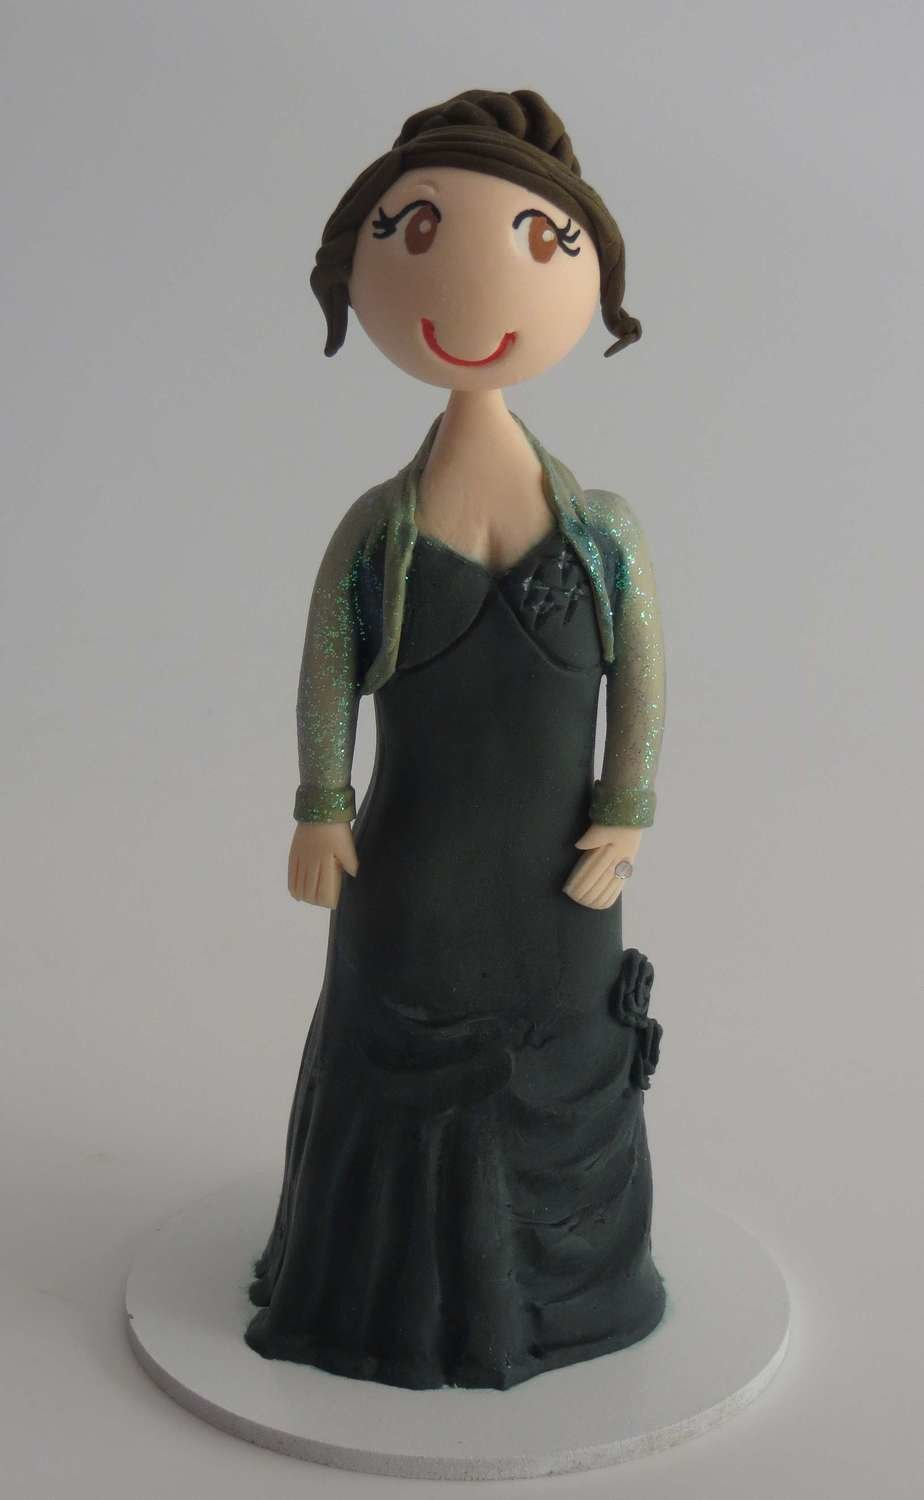 Special Occasion Toppers Single Female Figurine on base board